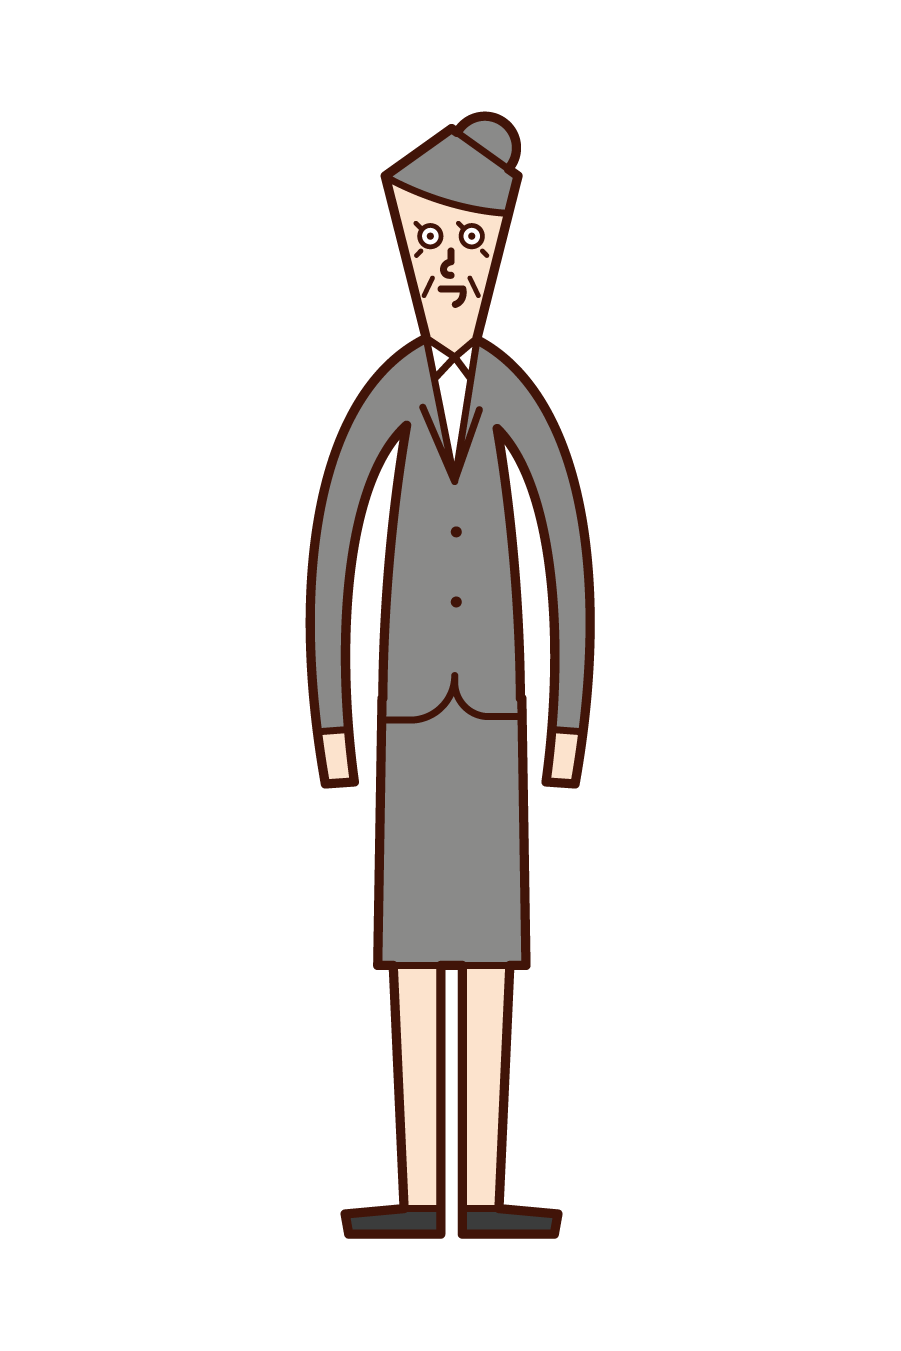 Illustration of grandmother in suit